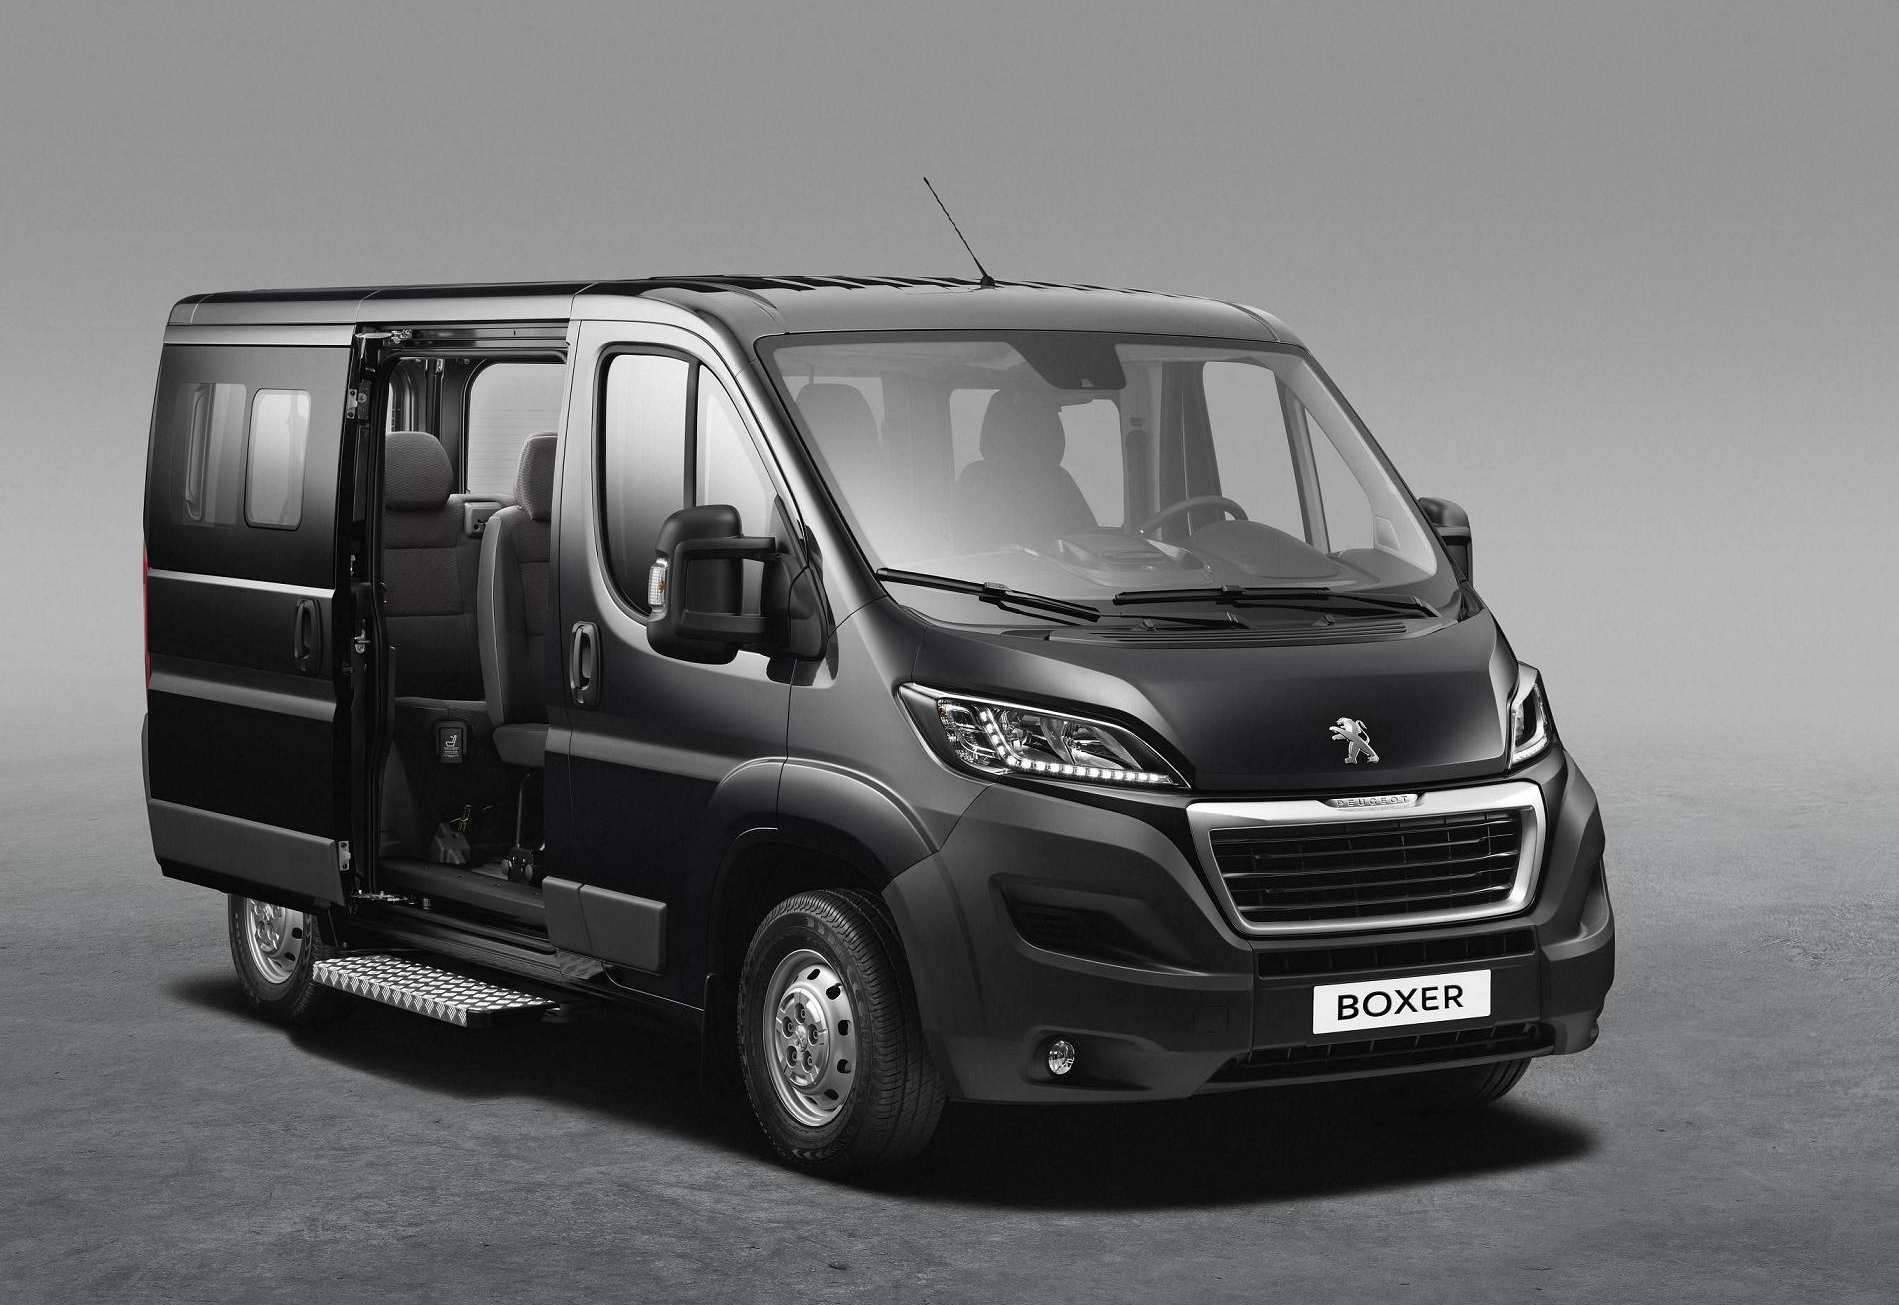 peugeot boxer combi 2014 la versi n m s vers til del furg n. Black Bedroom Furniture Sets. Home Design Ideas